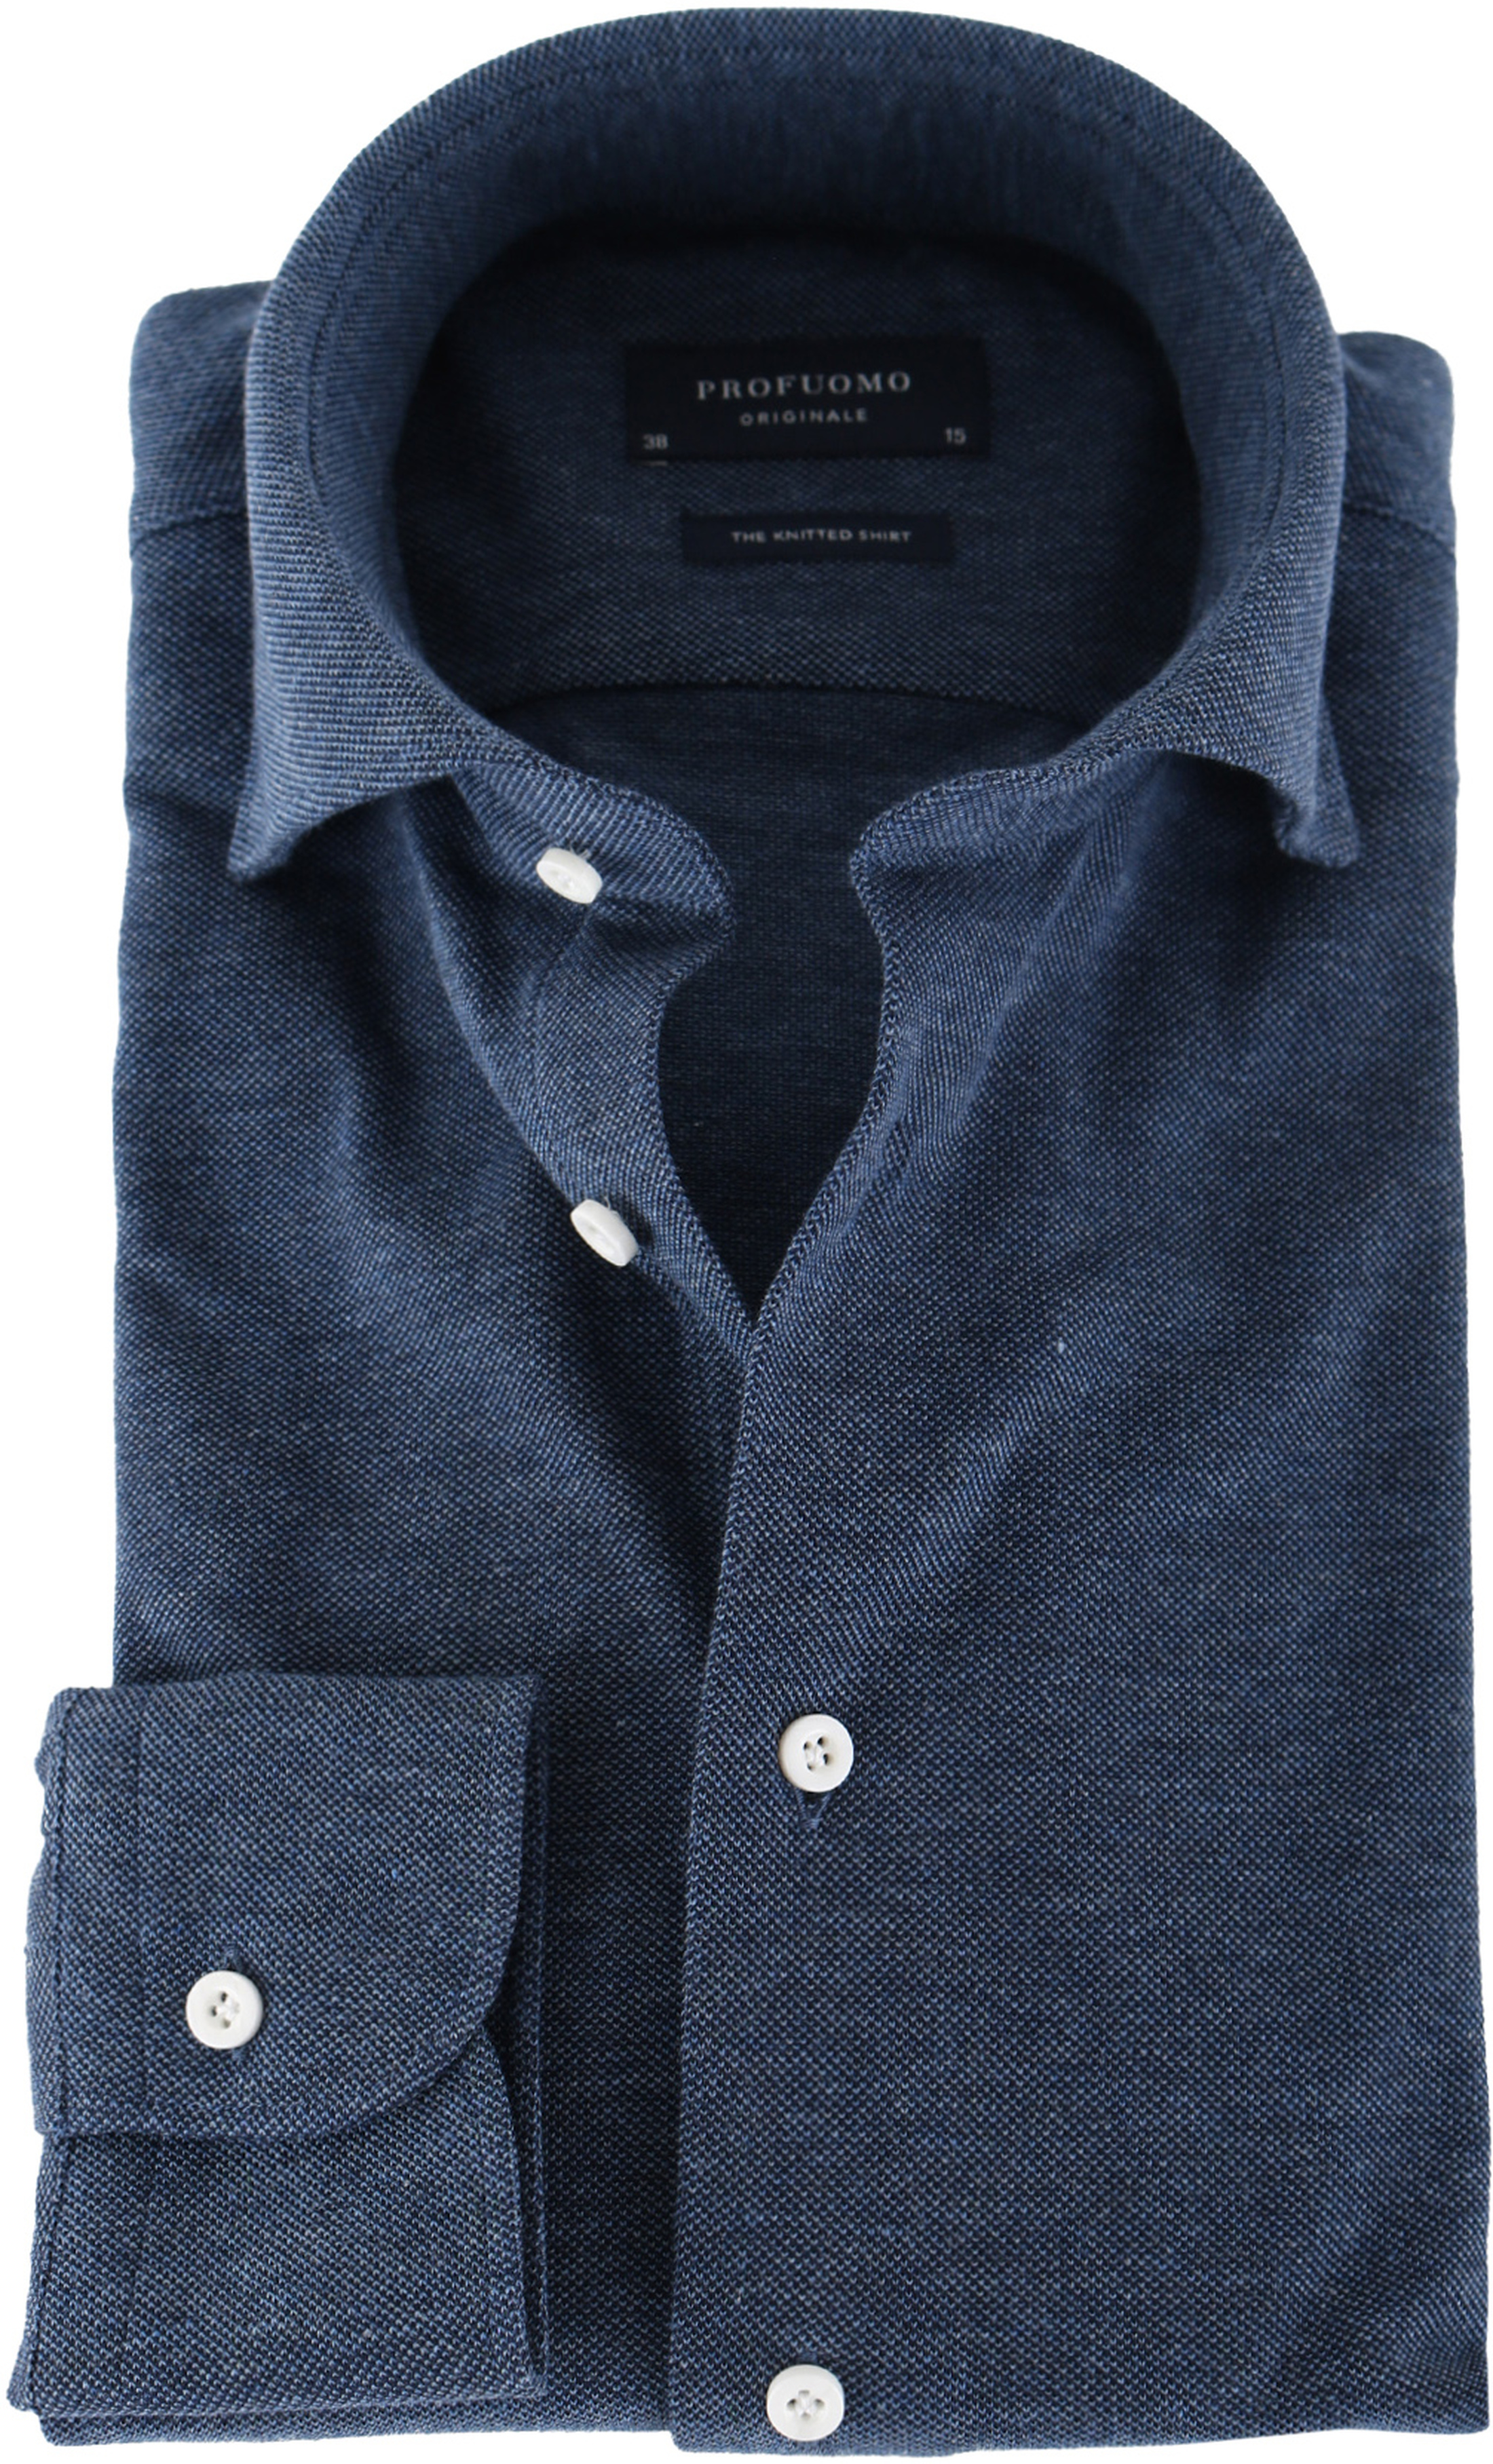 Profuomo Shirt Knitted Slim Fit Indigo Blue foto 0